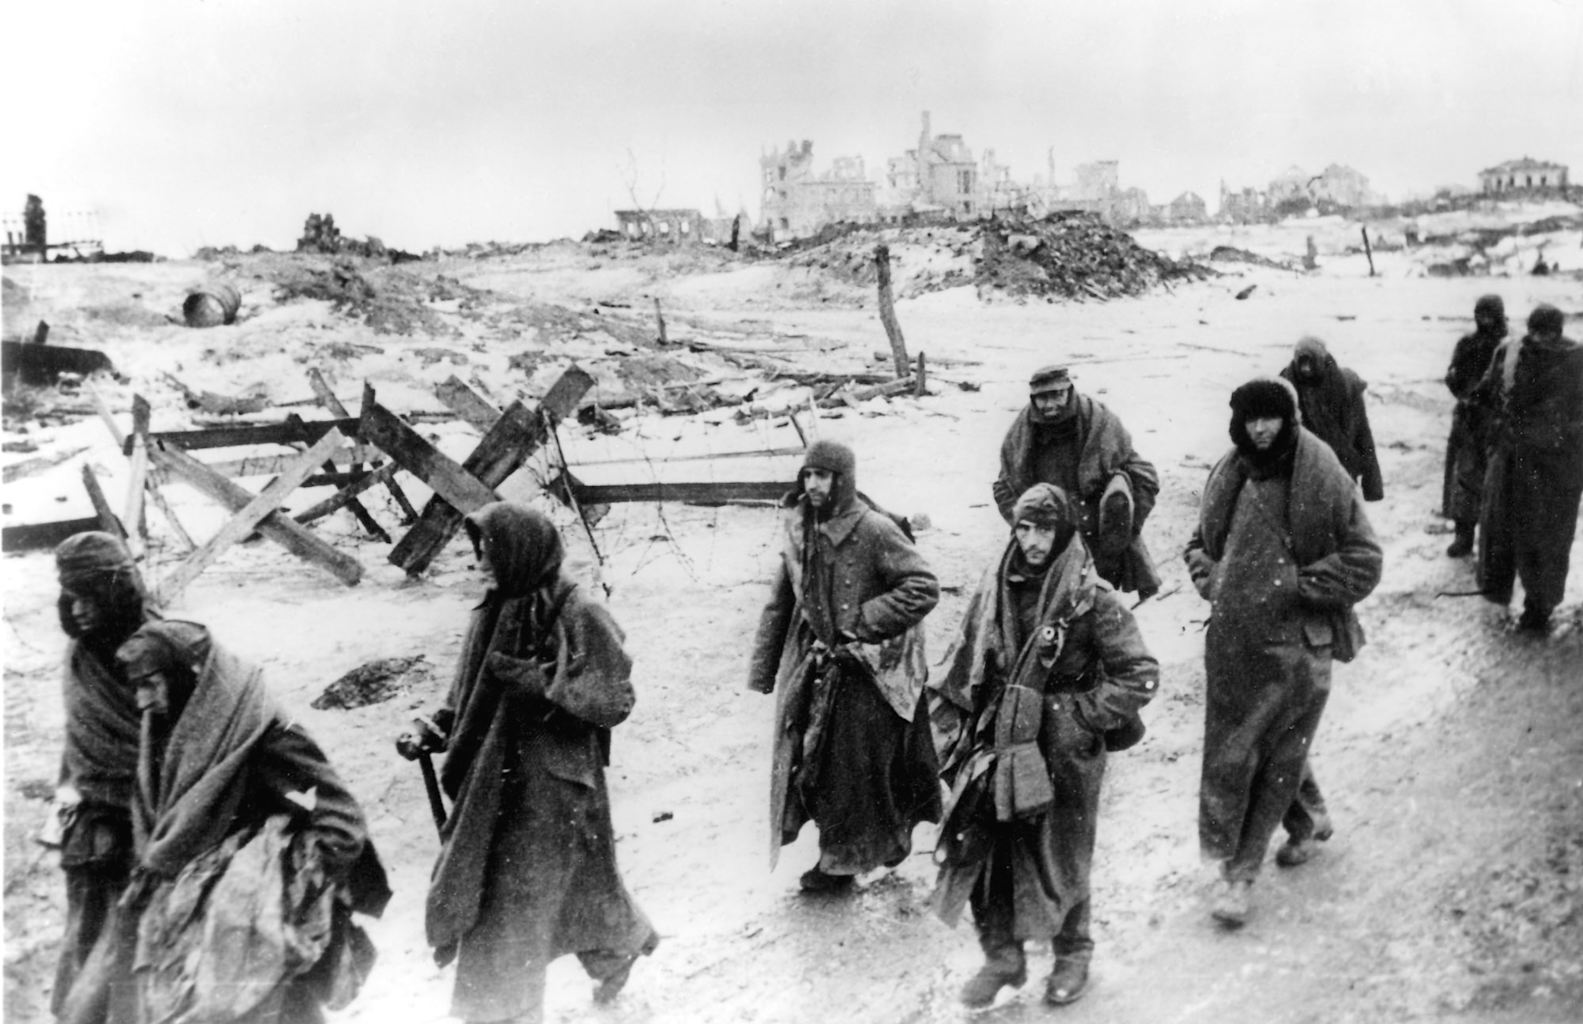 a history of the battle of stalingrad in world war ii The battle of stalingrad began in  the battle of stalingrad was the bloodiest battle in recorded history and it  edlifes picture history of world war ii.